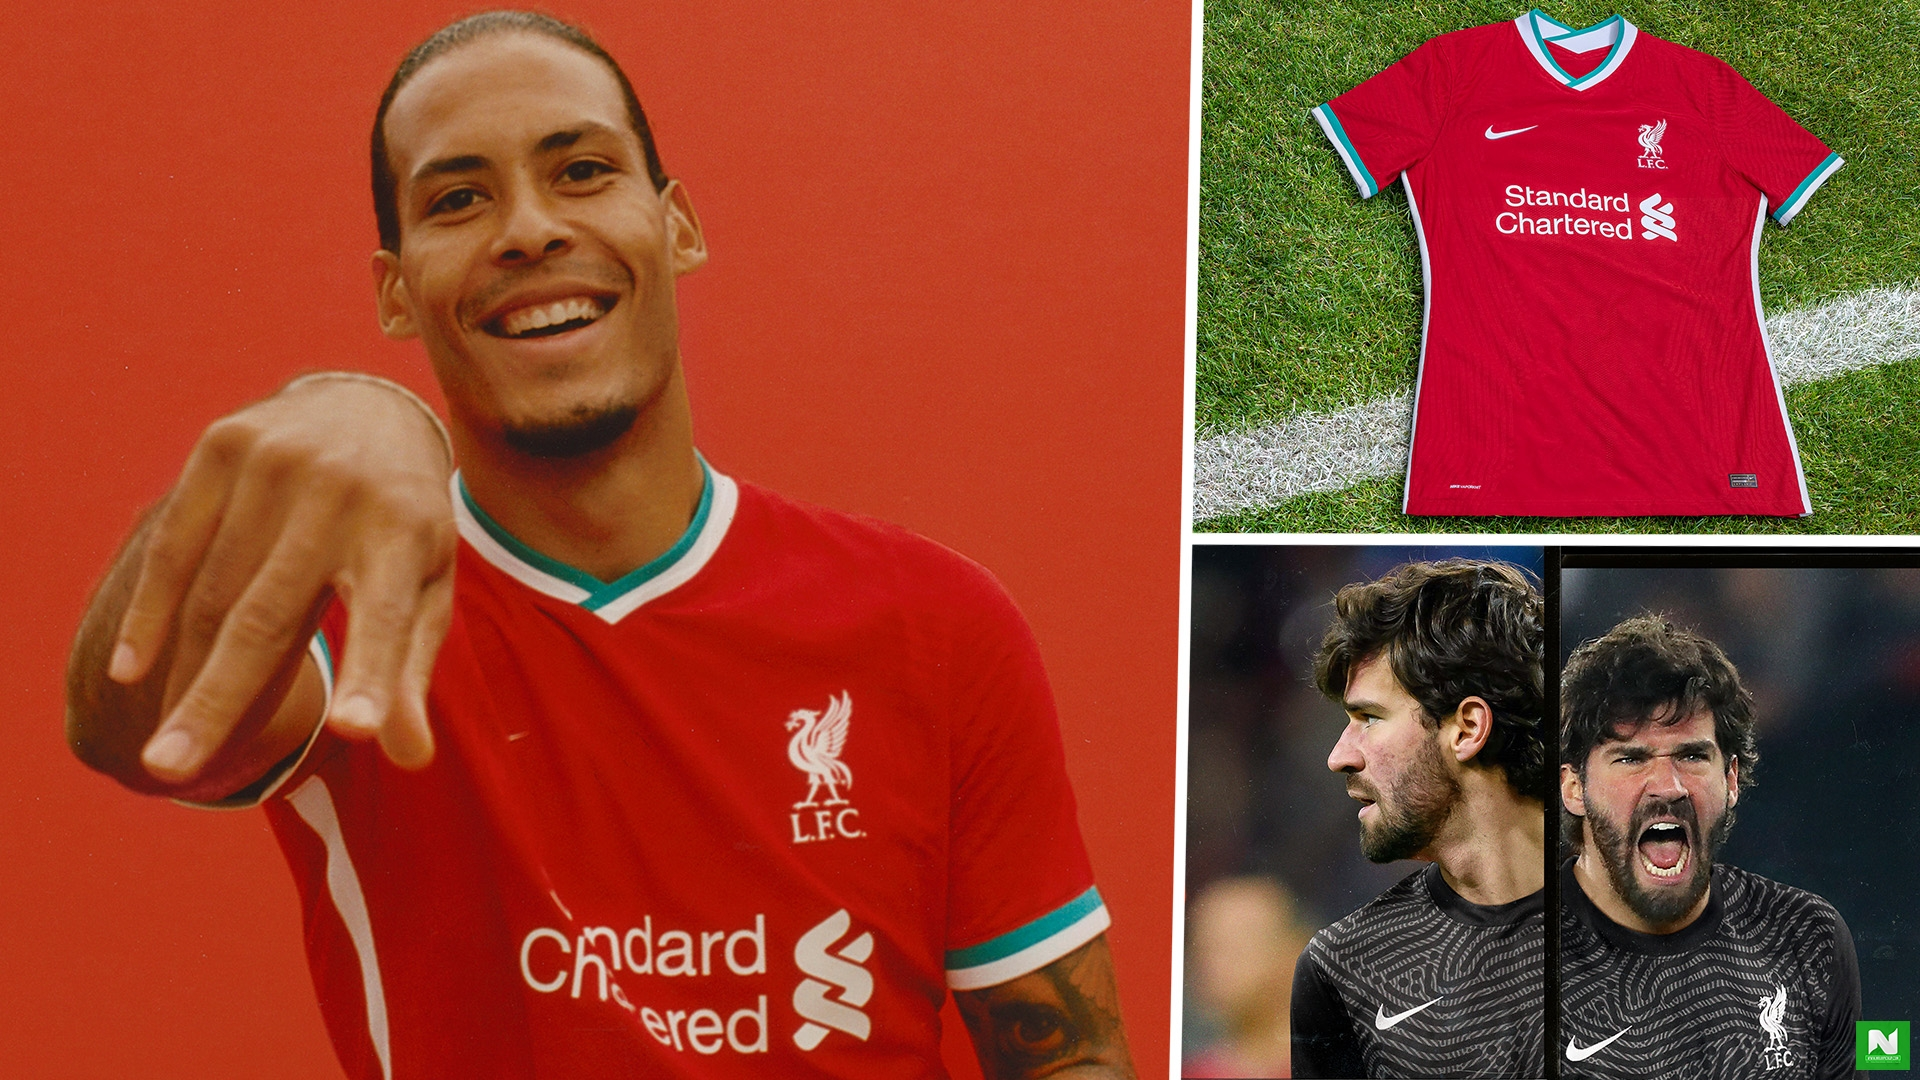 Liverpool's 2020-21 kit: New home and away jersey styles and release dates